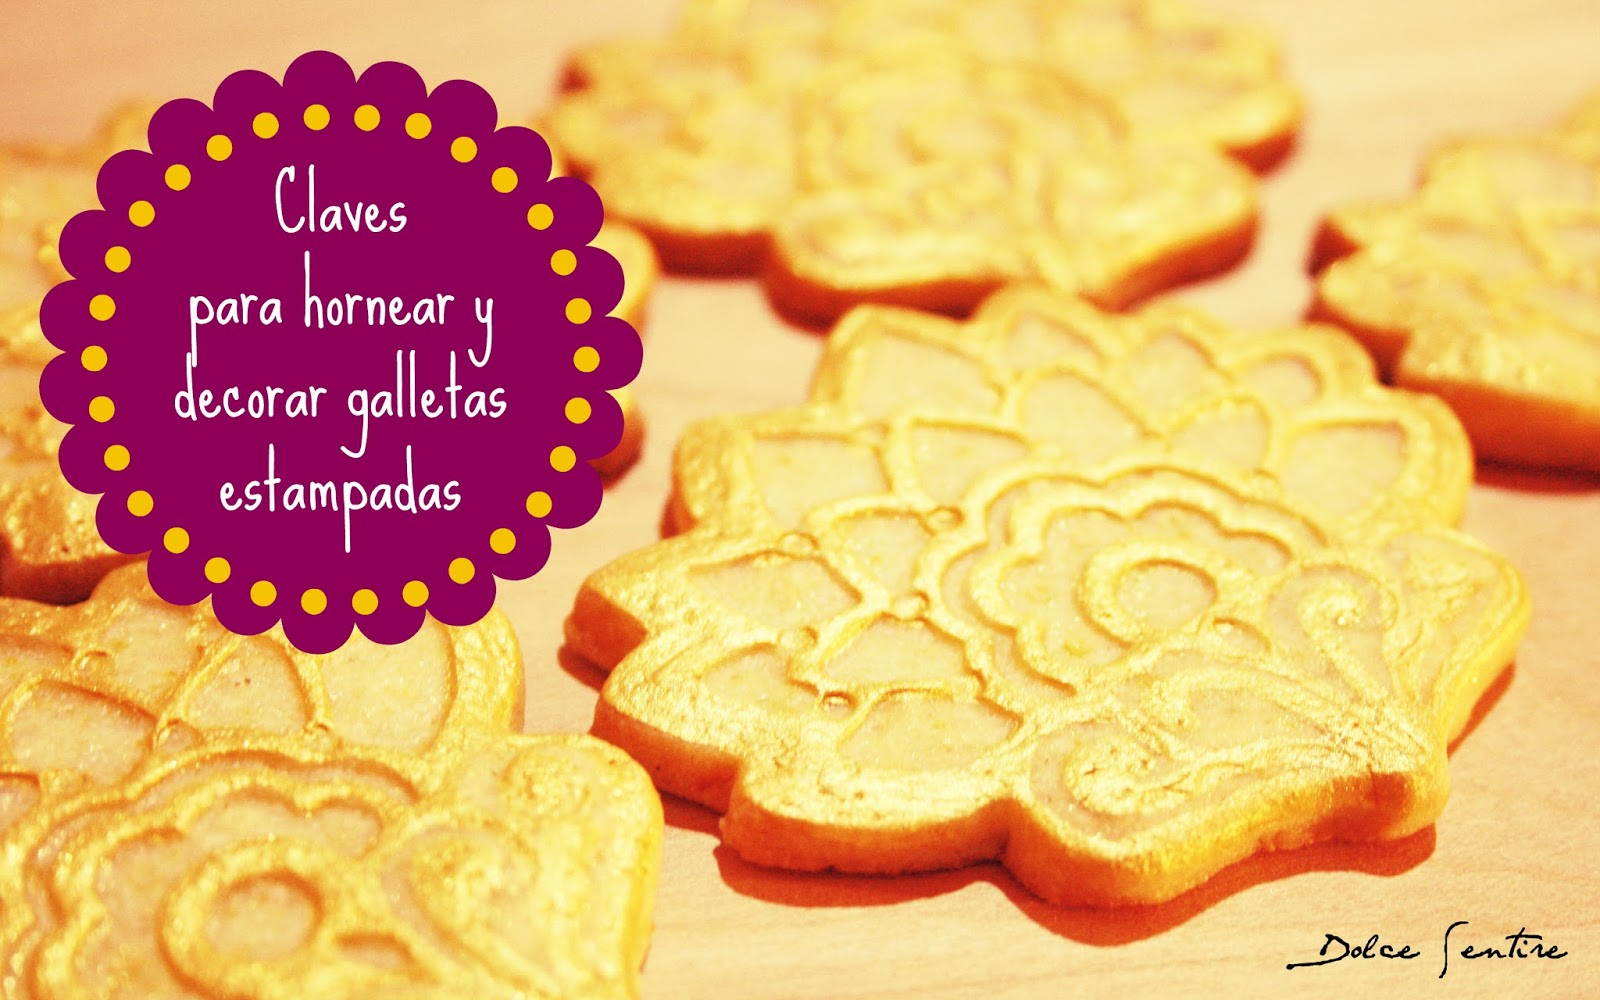 Decorar Galletas Dolce Sentire Galletas Decoradas Claves Para Hornear Y